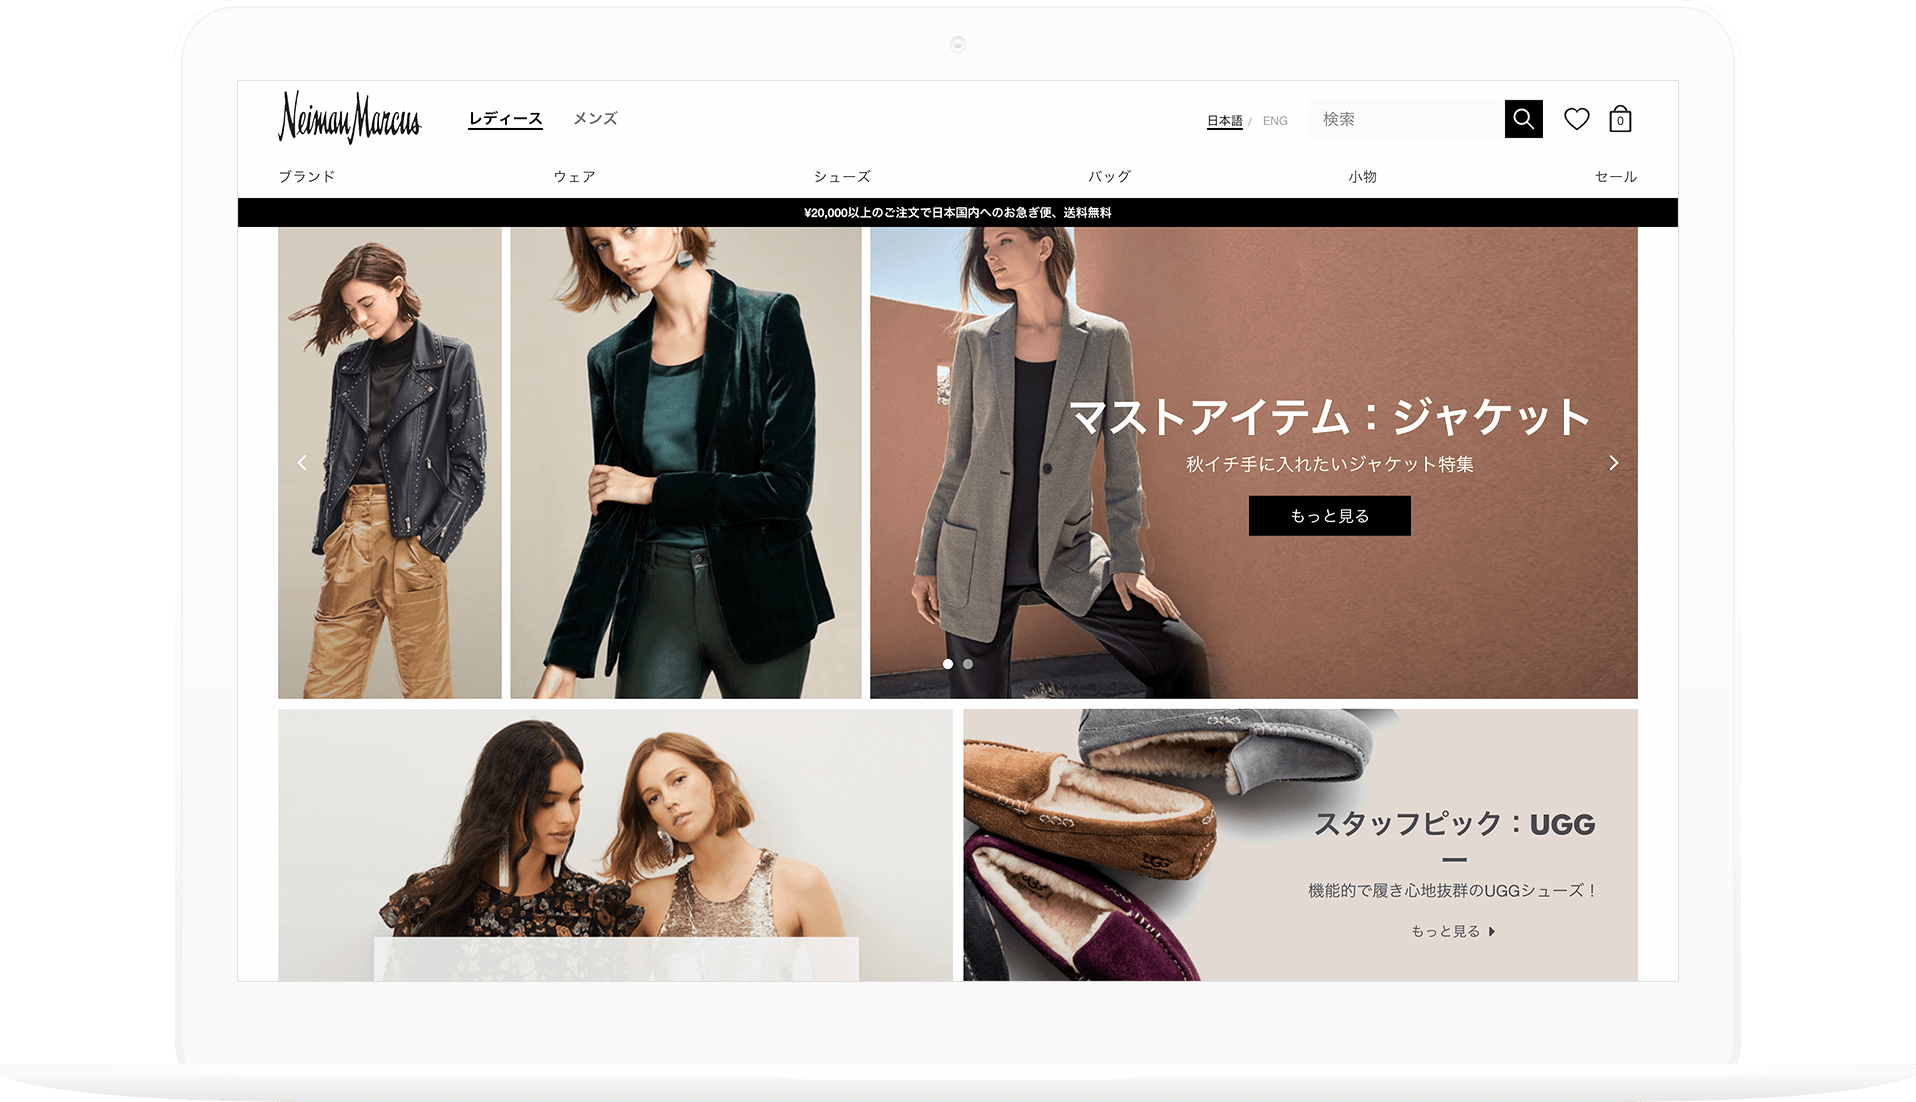 Neiman Marcus Japan Homepage featuring female fashion models